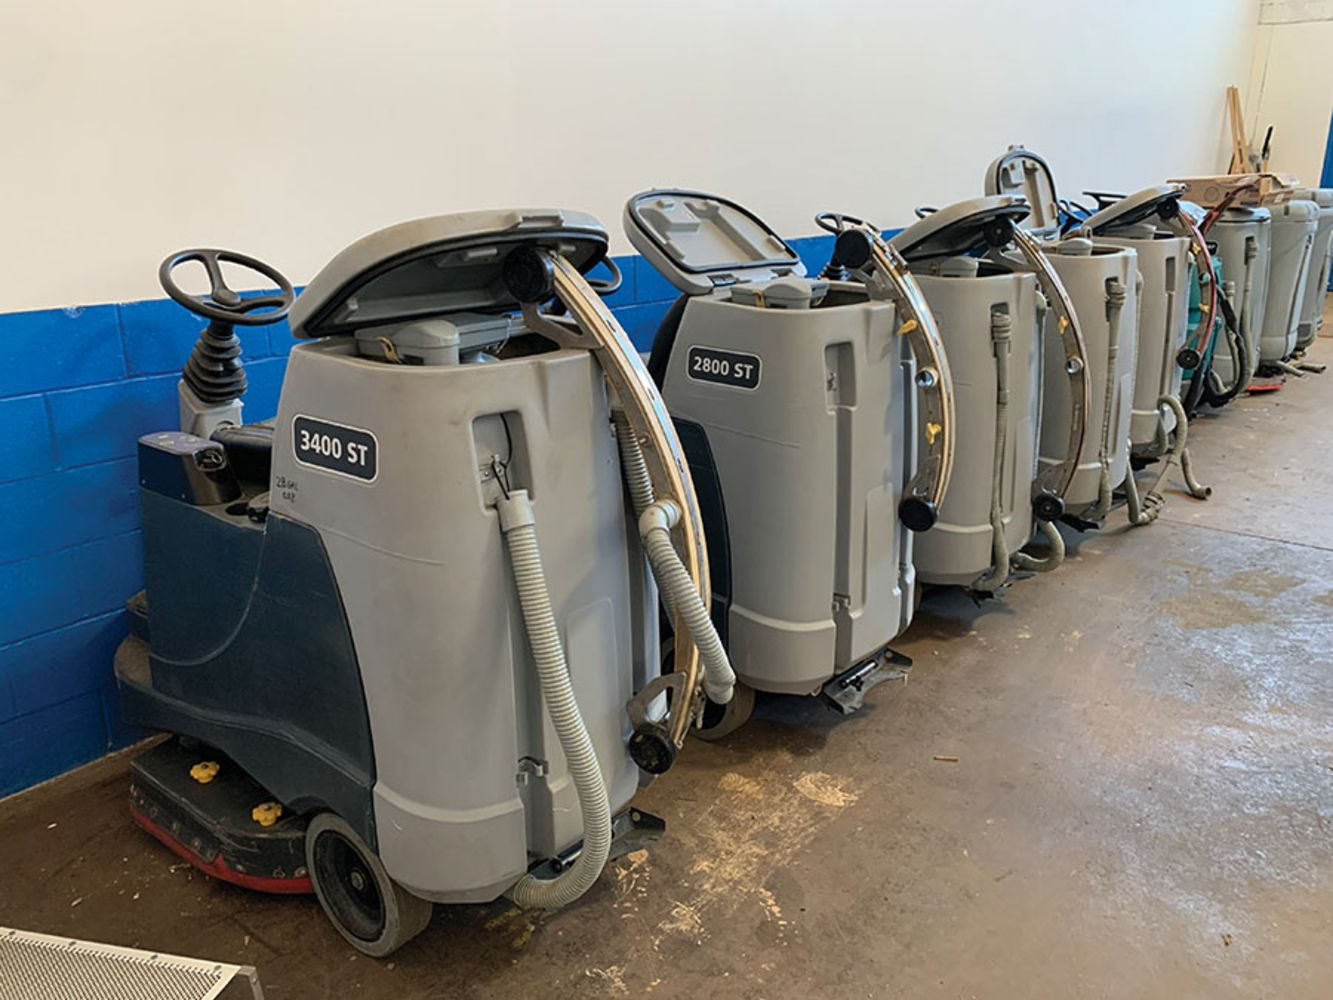 COMMERCIAL FLOOR CLEANING EQUIPMENT - TIMED - ONLINE ONLY - Forklifts, Floor Scrubbers, Carpet Extractors, Pressure Washers, Etc.